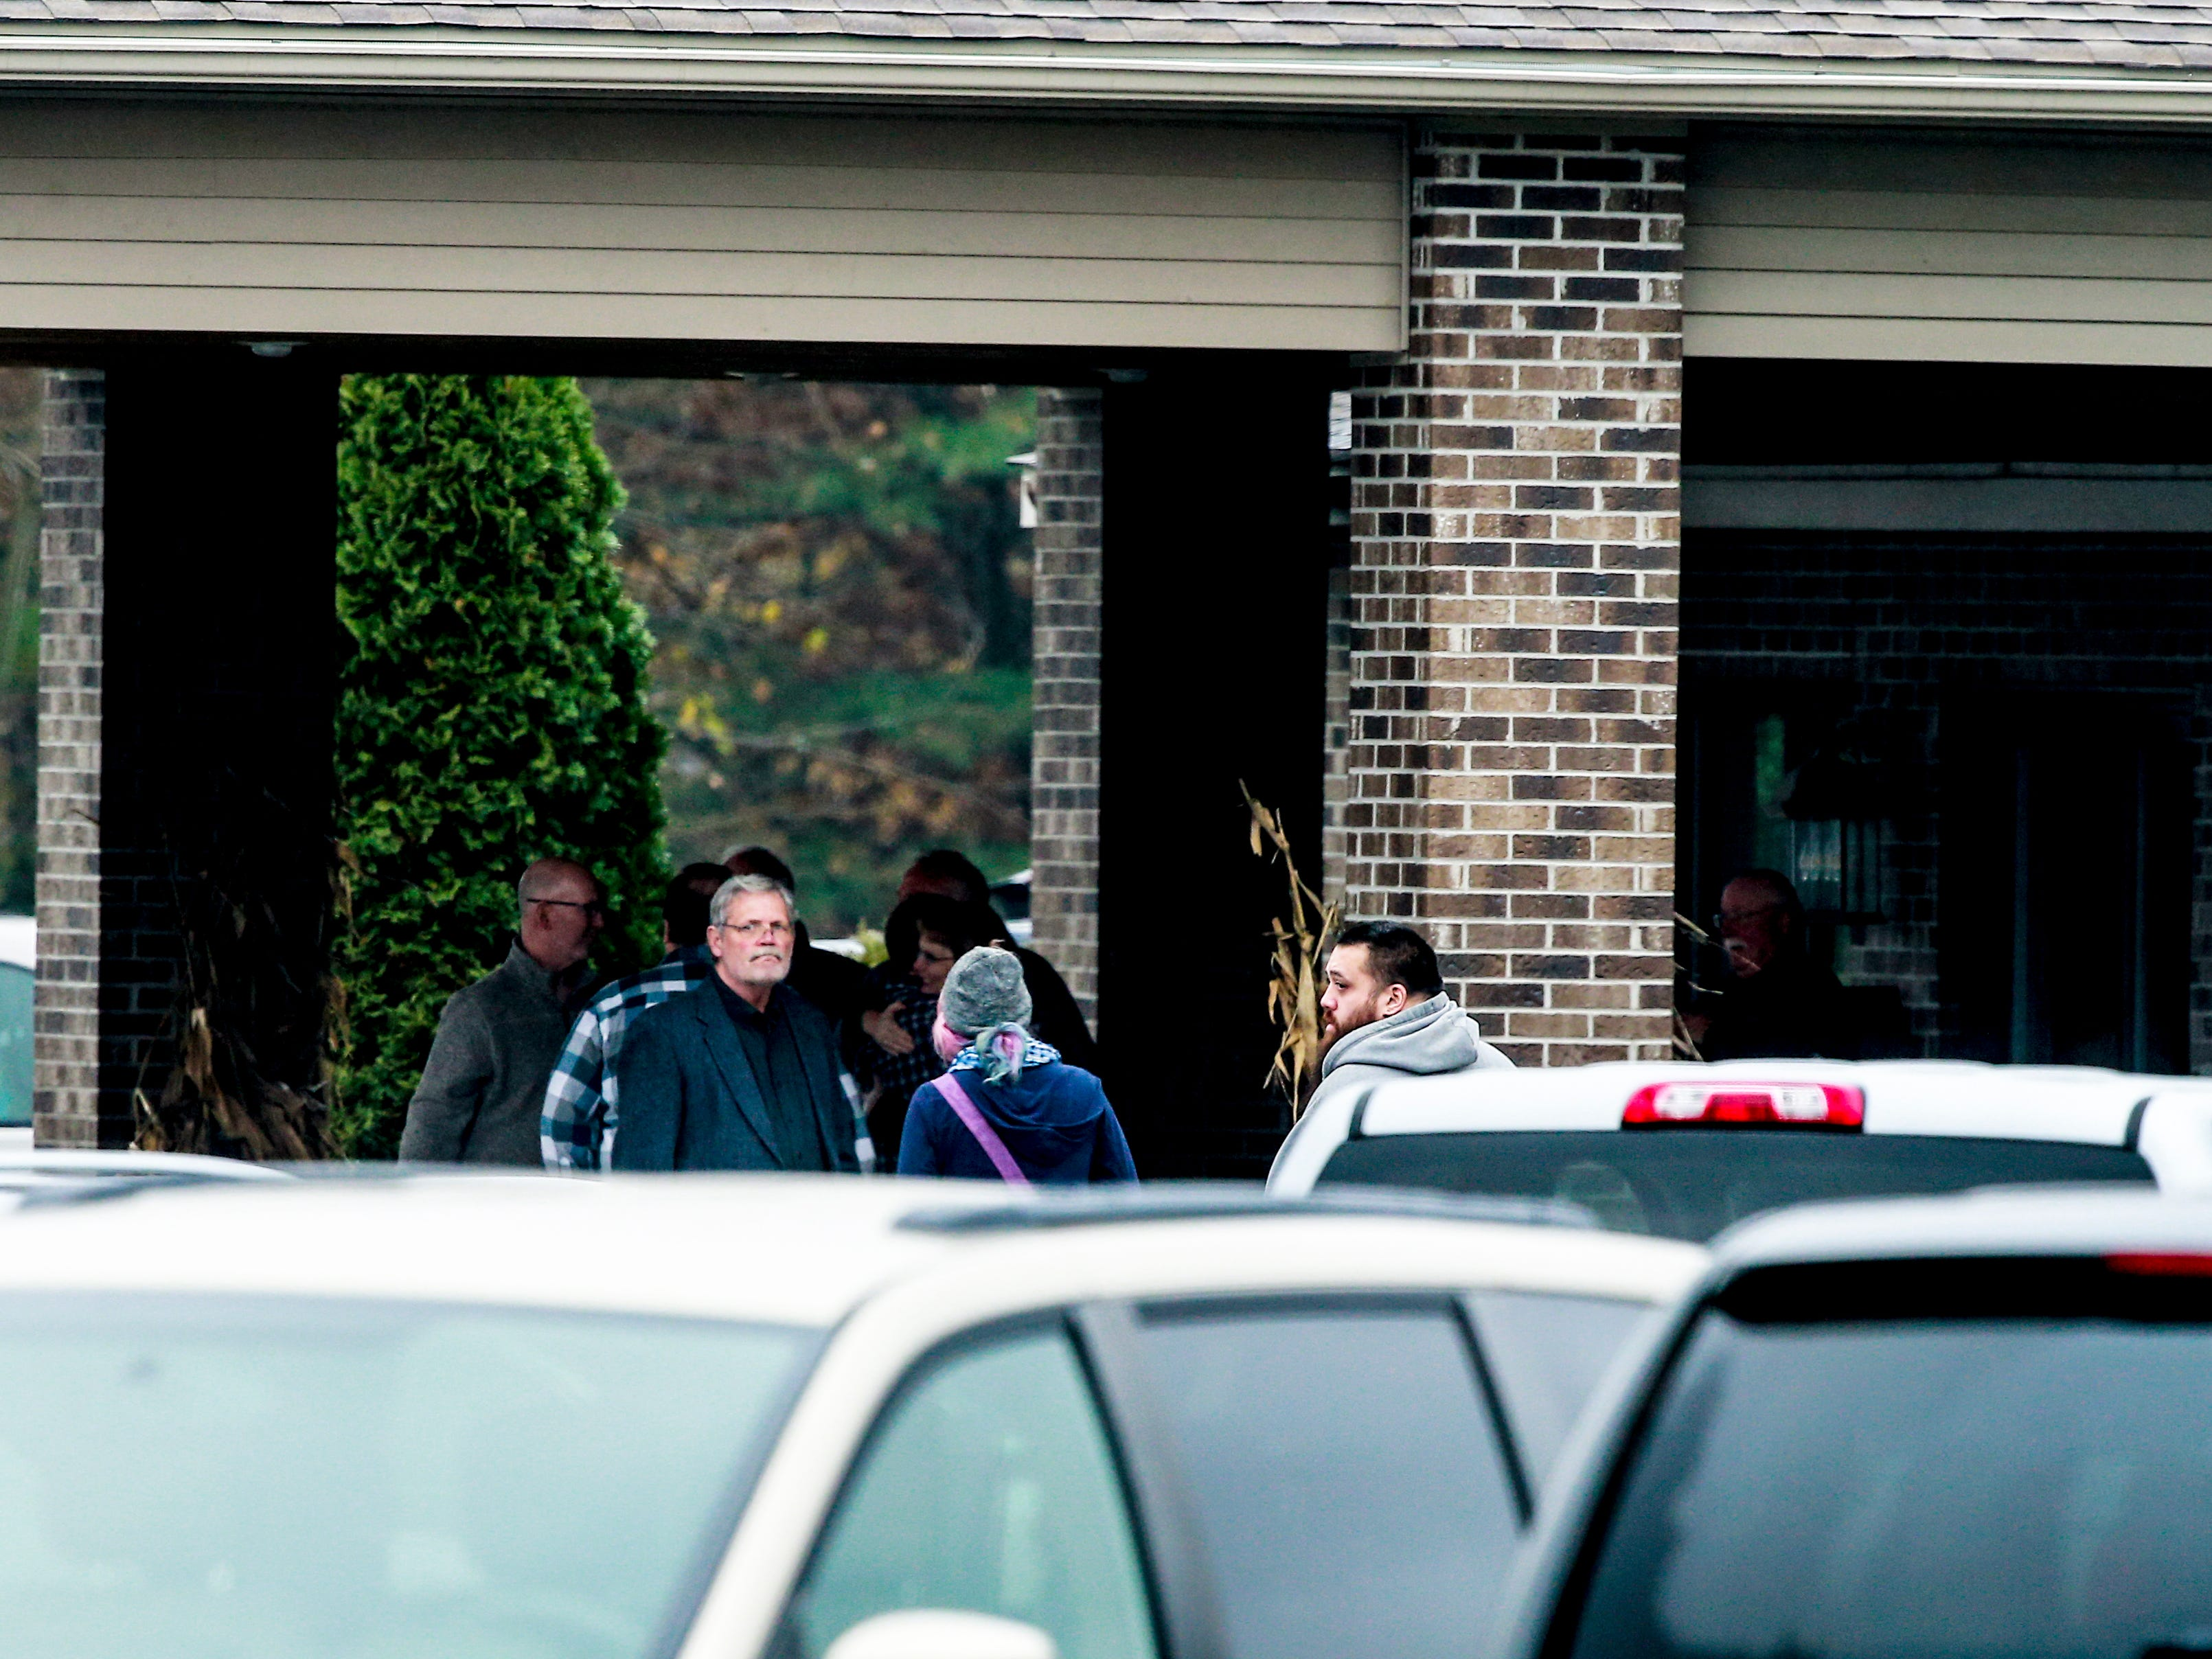 People attend the visitation of James and Denise Closs on Saturday at St. Peter Catholic Church in Cameron. Their deaths on Oct. 15 have been ruled homicides, and their 13-year-old daughter, Jayme, remains missing and endangered.